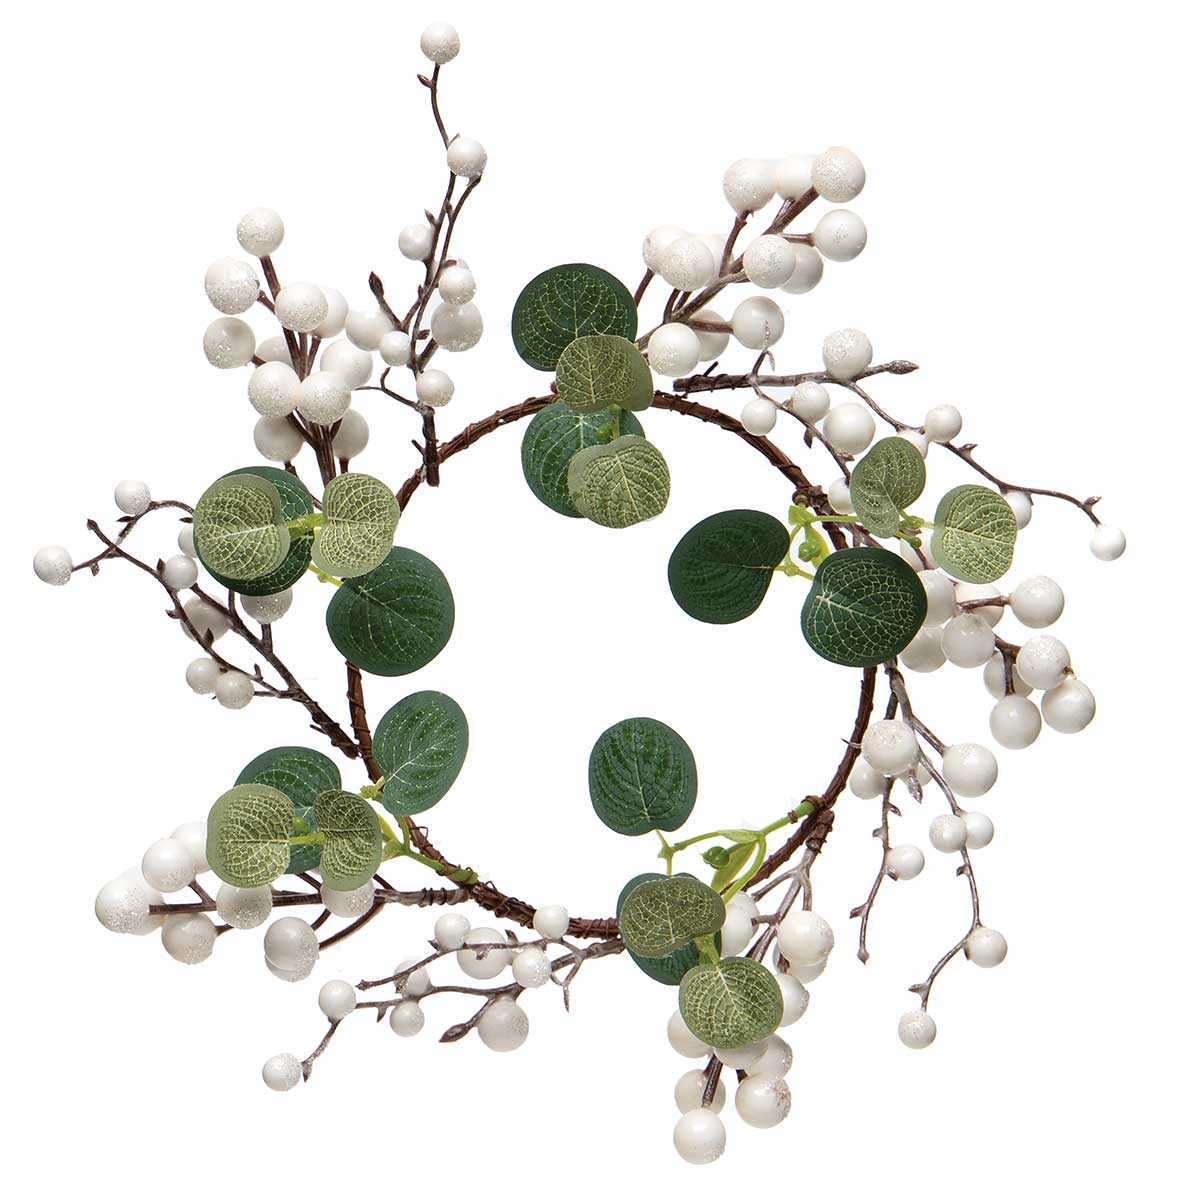 WINTER BERRY MINI WREATH WHITE WITH EUCALYPTUS LEAVES